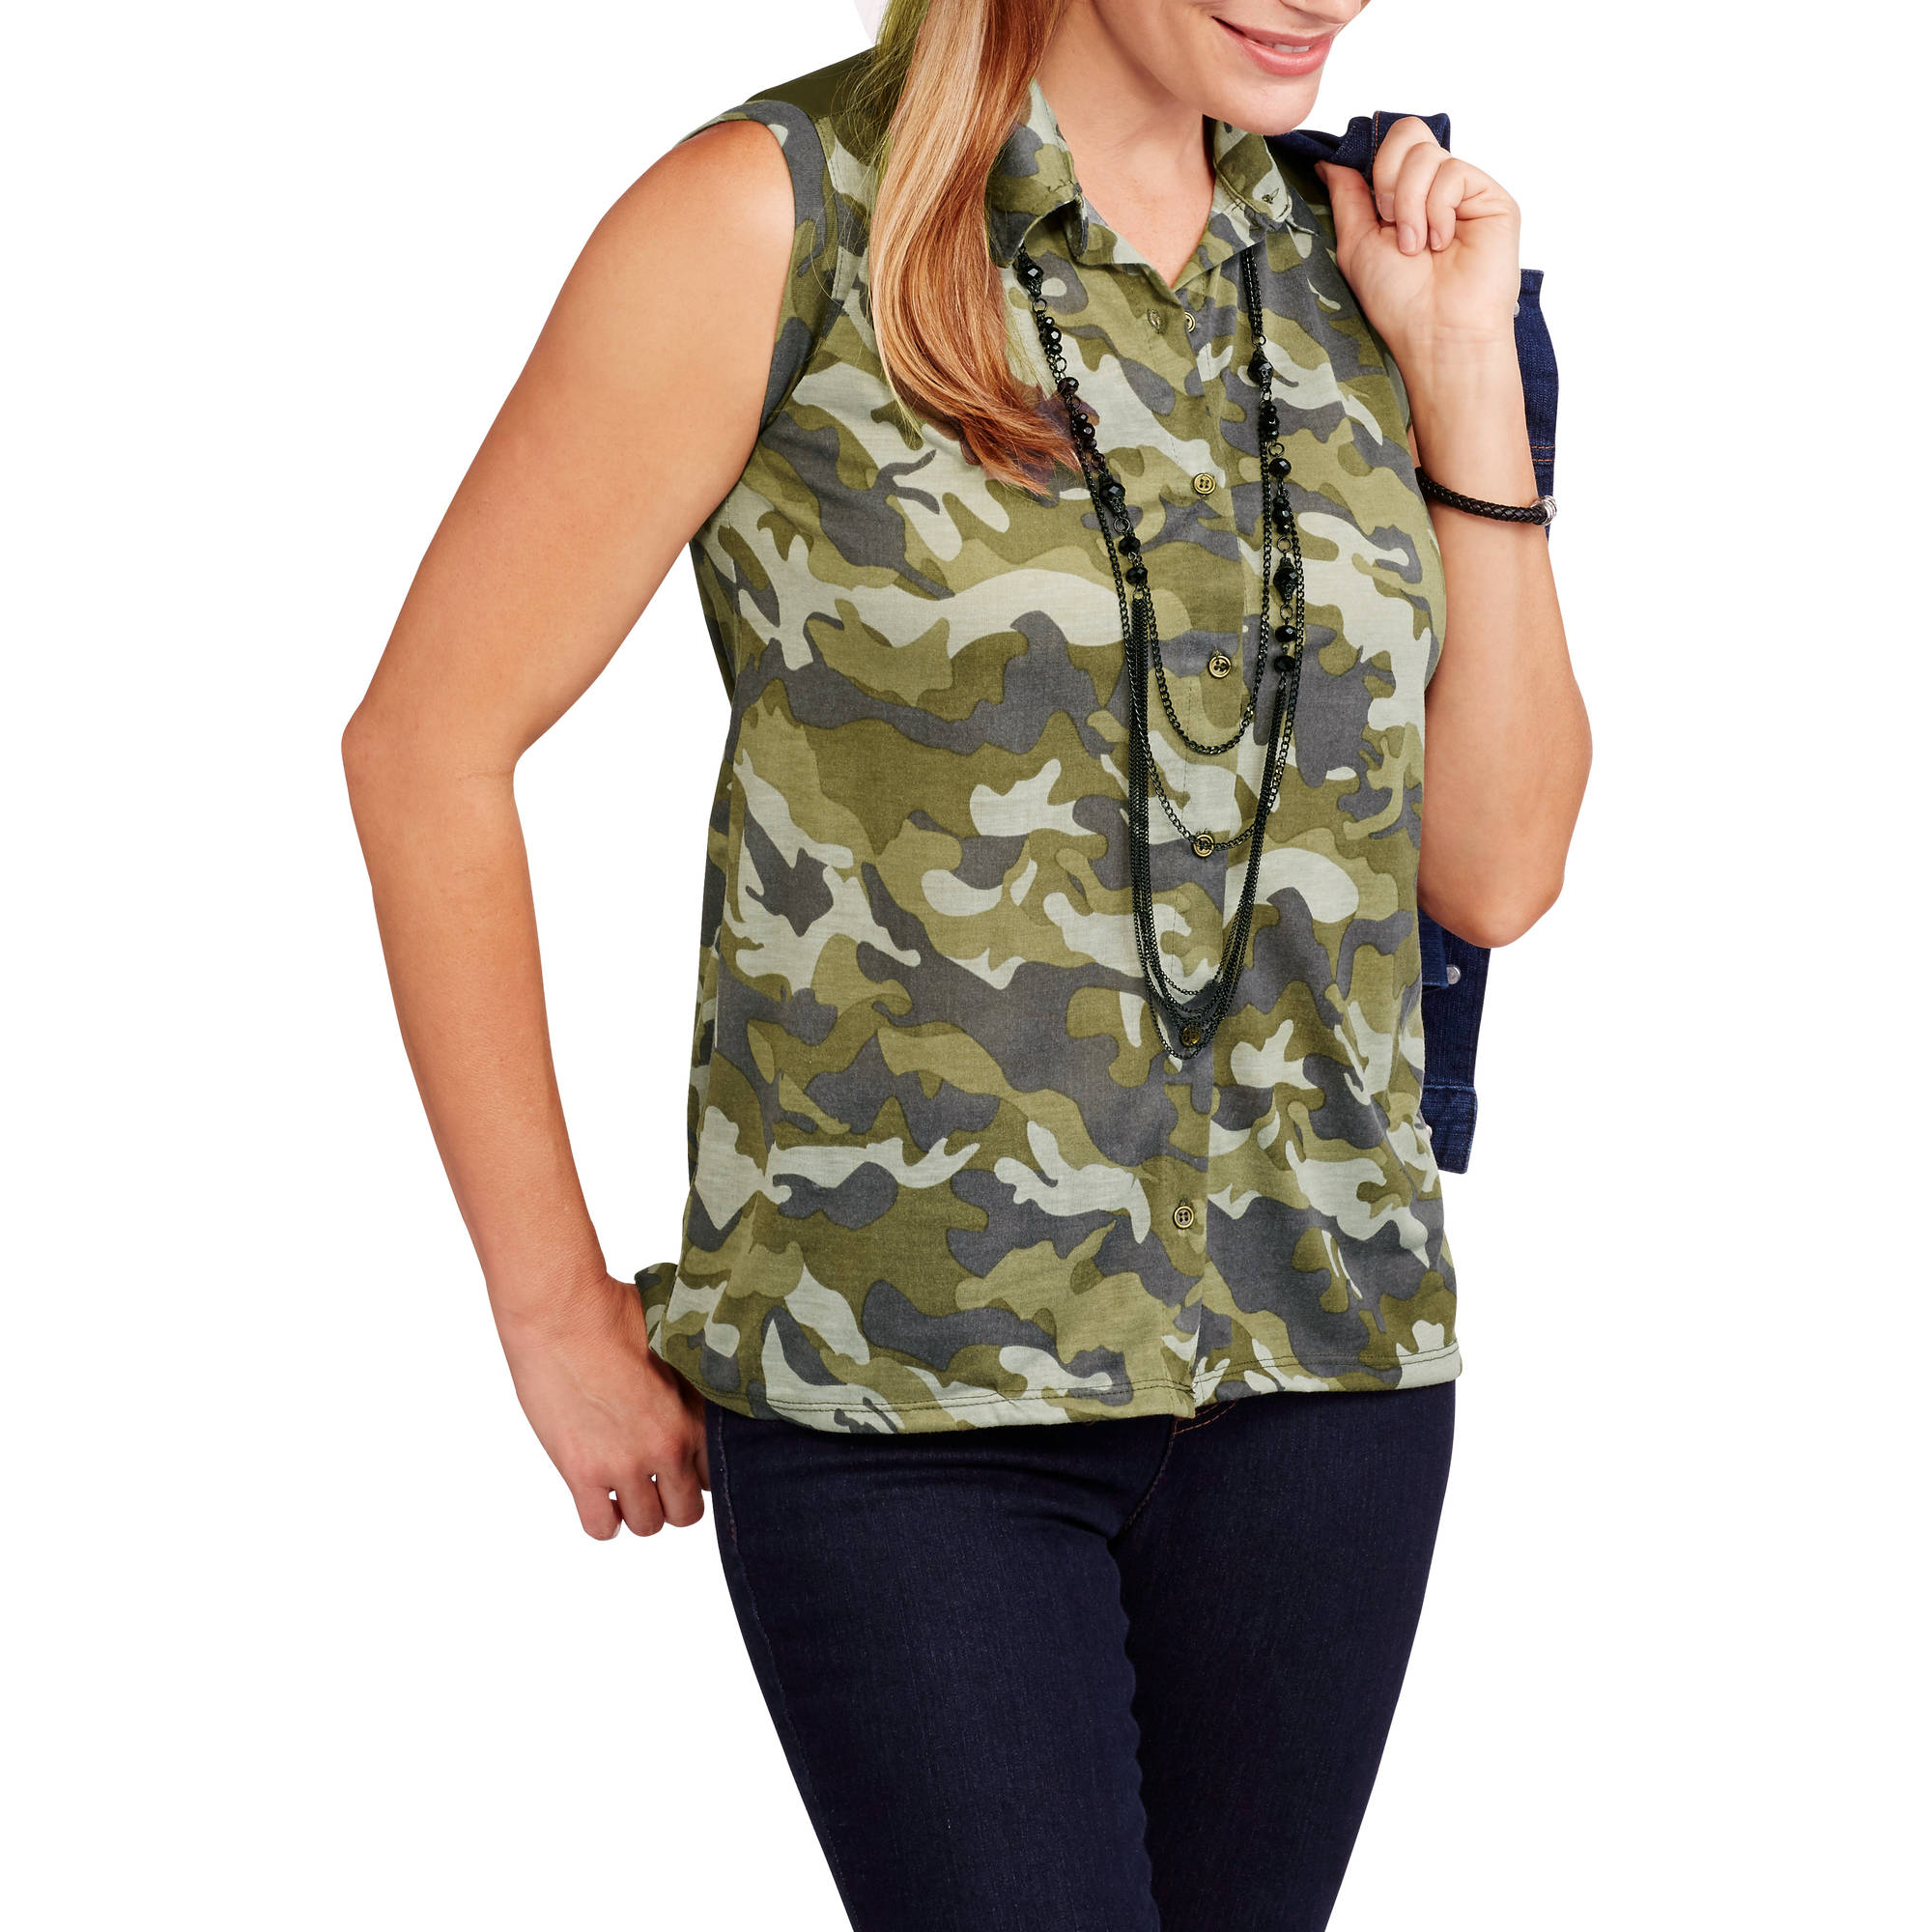 French Laundry Women's Soft Knit Camo Sleeveless Button-Front Top